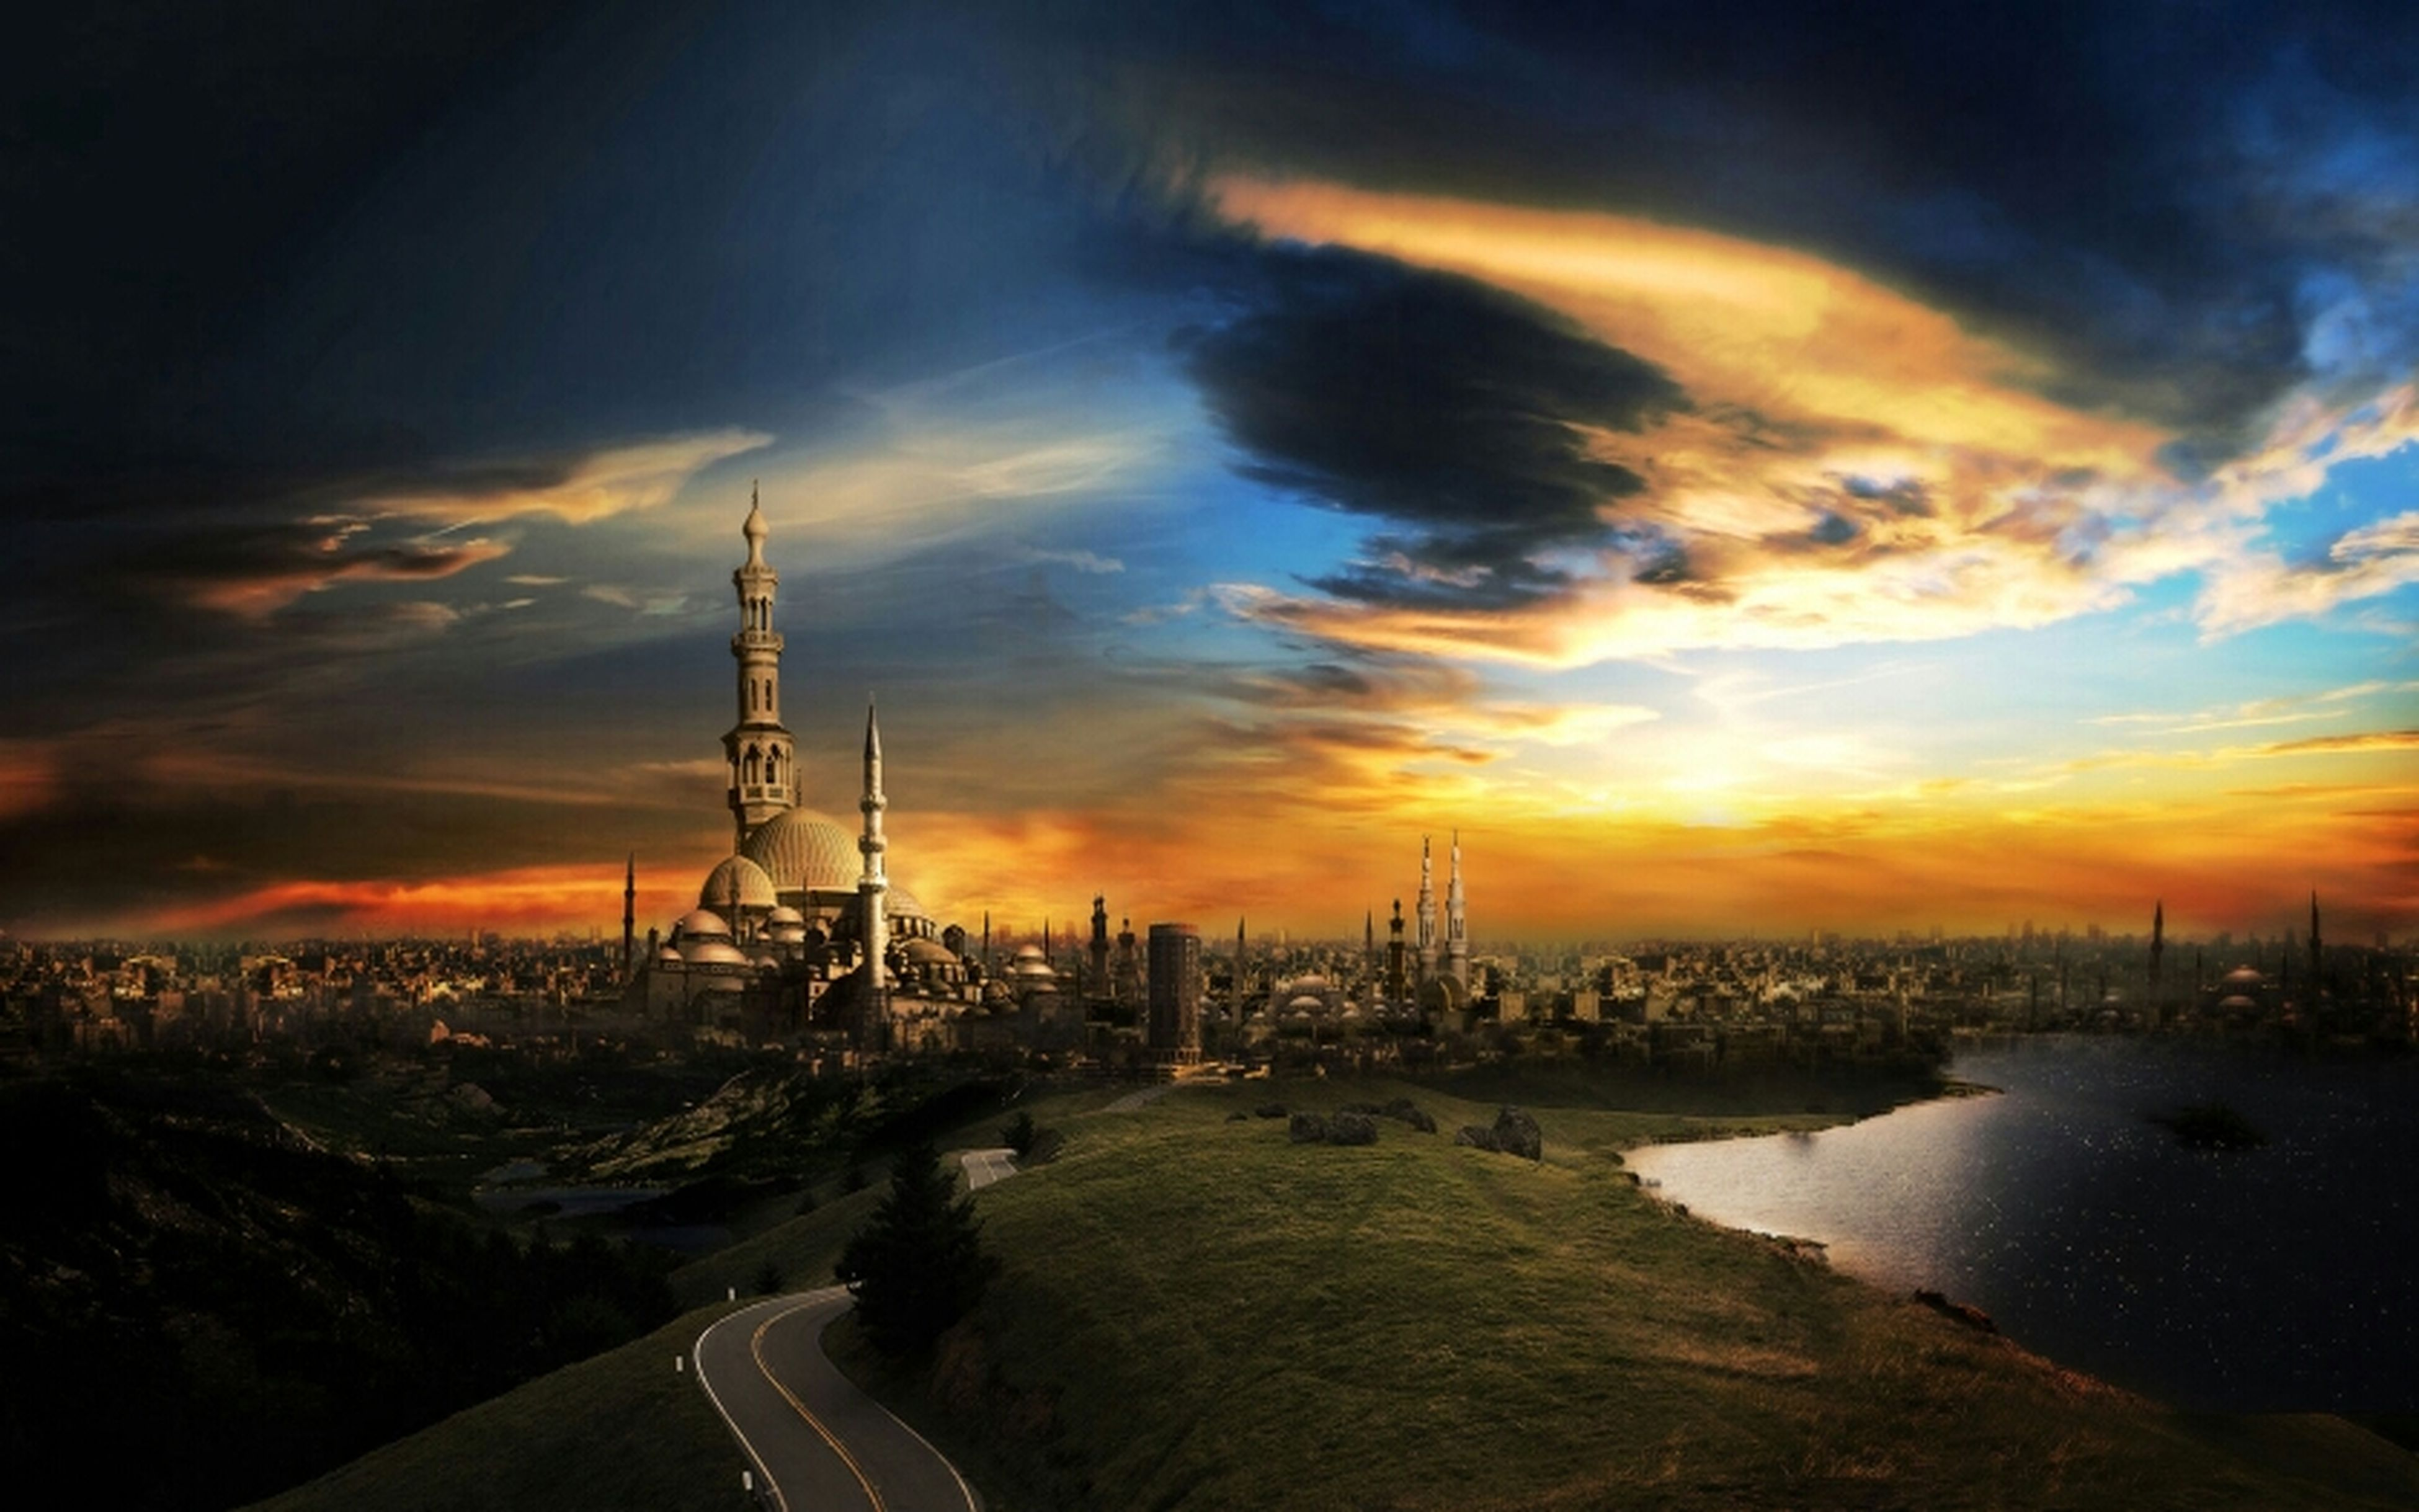 sunset, architecture, built structure, building exterior, sky, city, orange color, water, cloud - sky, cityscape, tower, river, sea, communications tower, tall - high, dusk, high angle view, cloud, travel destinations, silhouette